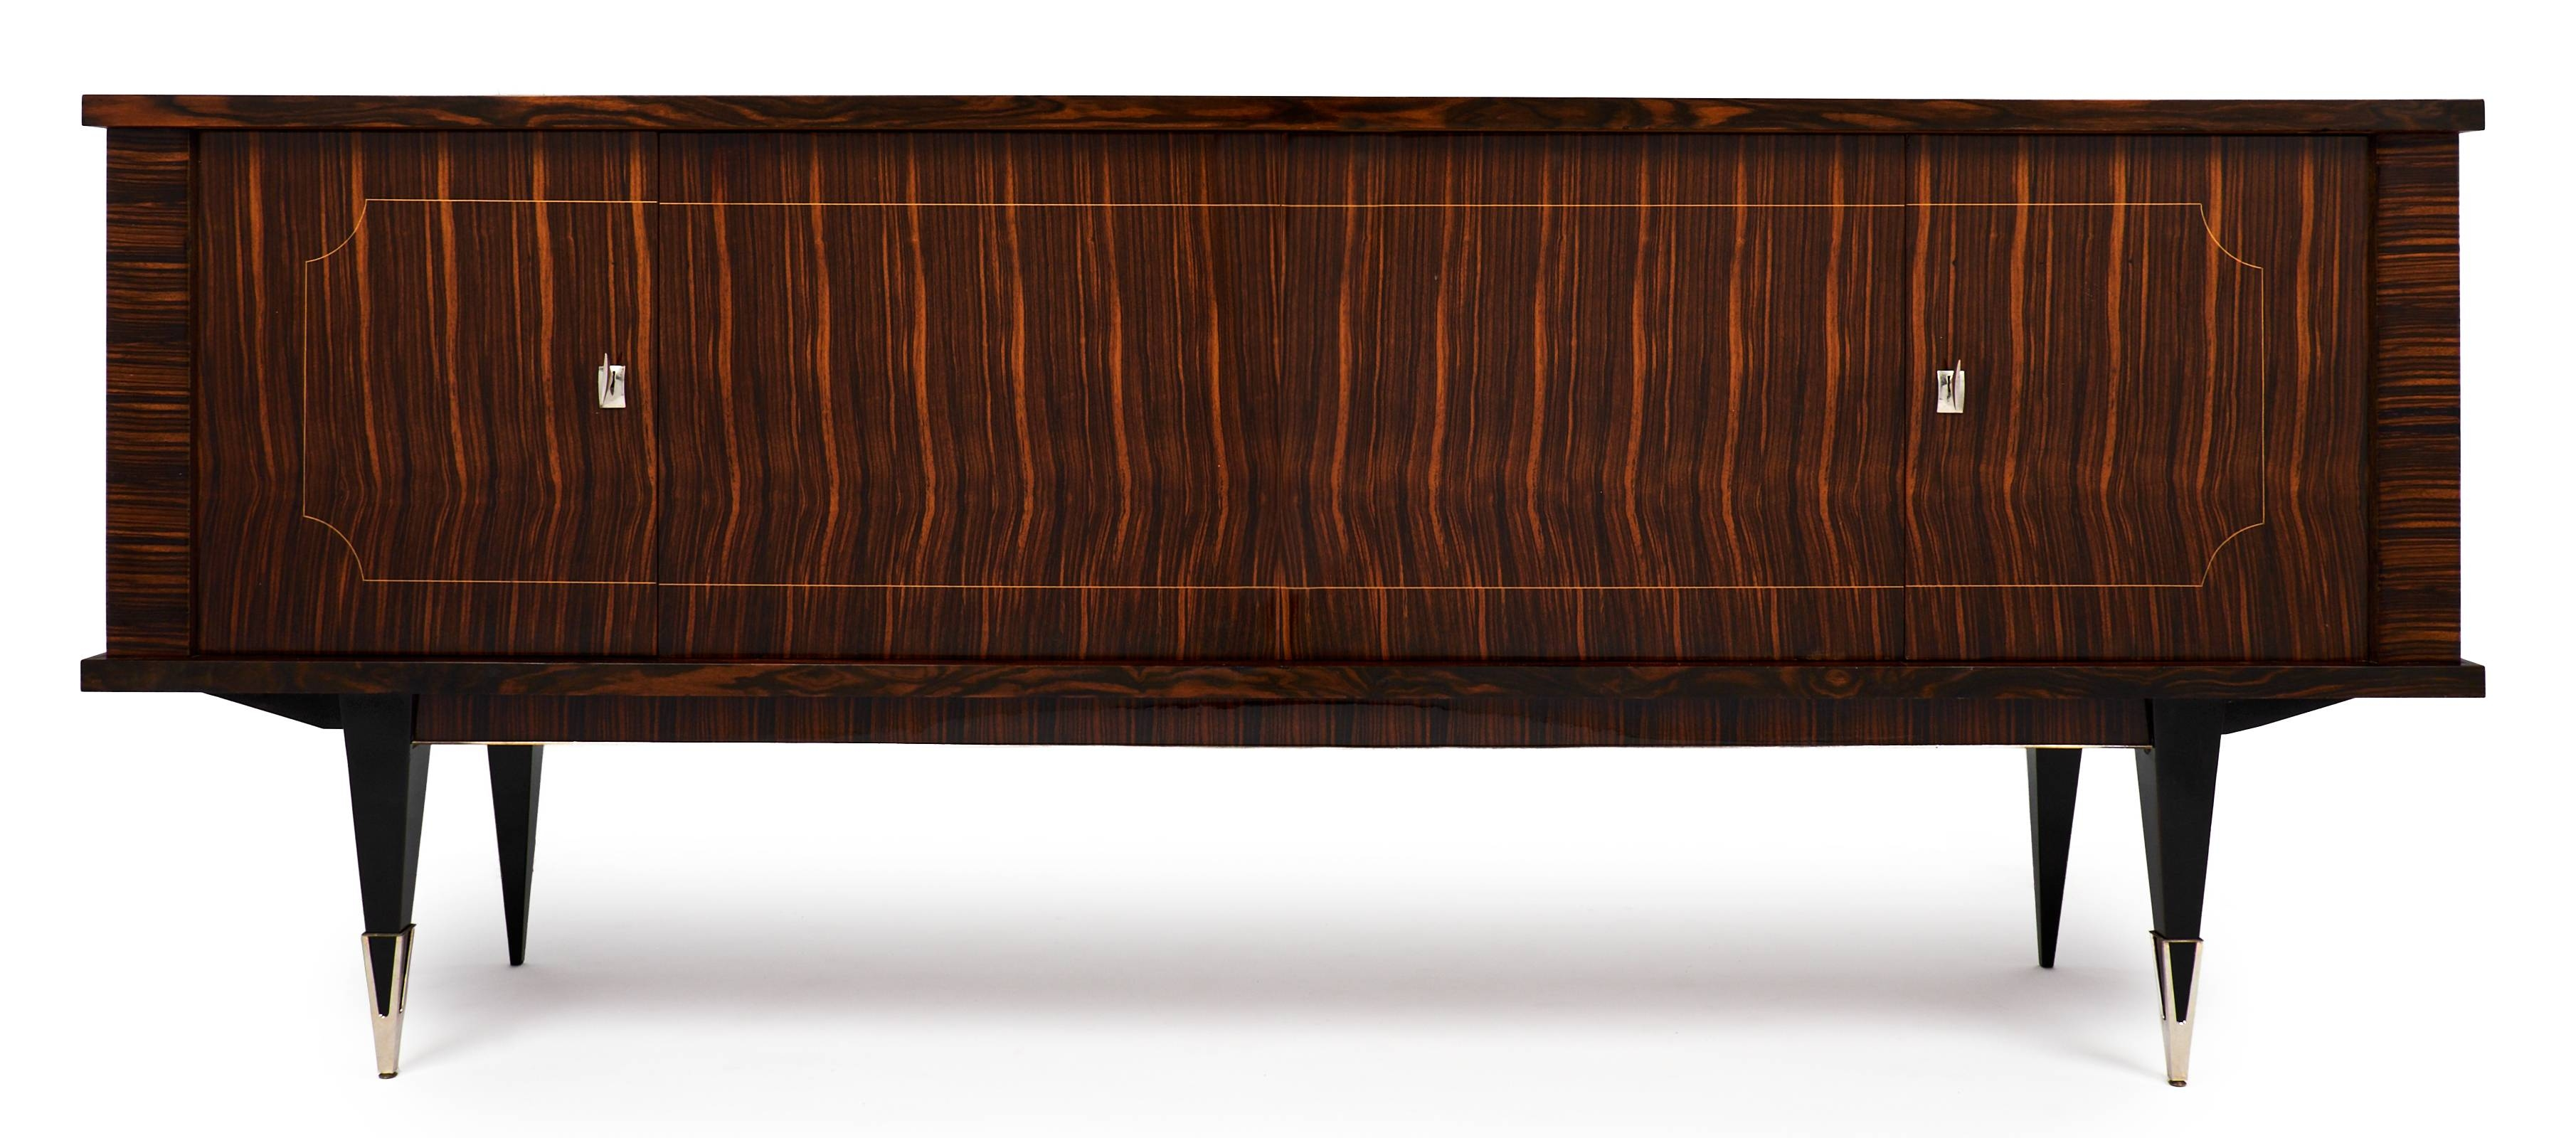 Mid Century Modern French Macassar Sideboard – Jean Marc Fray In Mid Century Modern Sideboards (View 4 of 15)